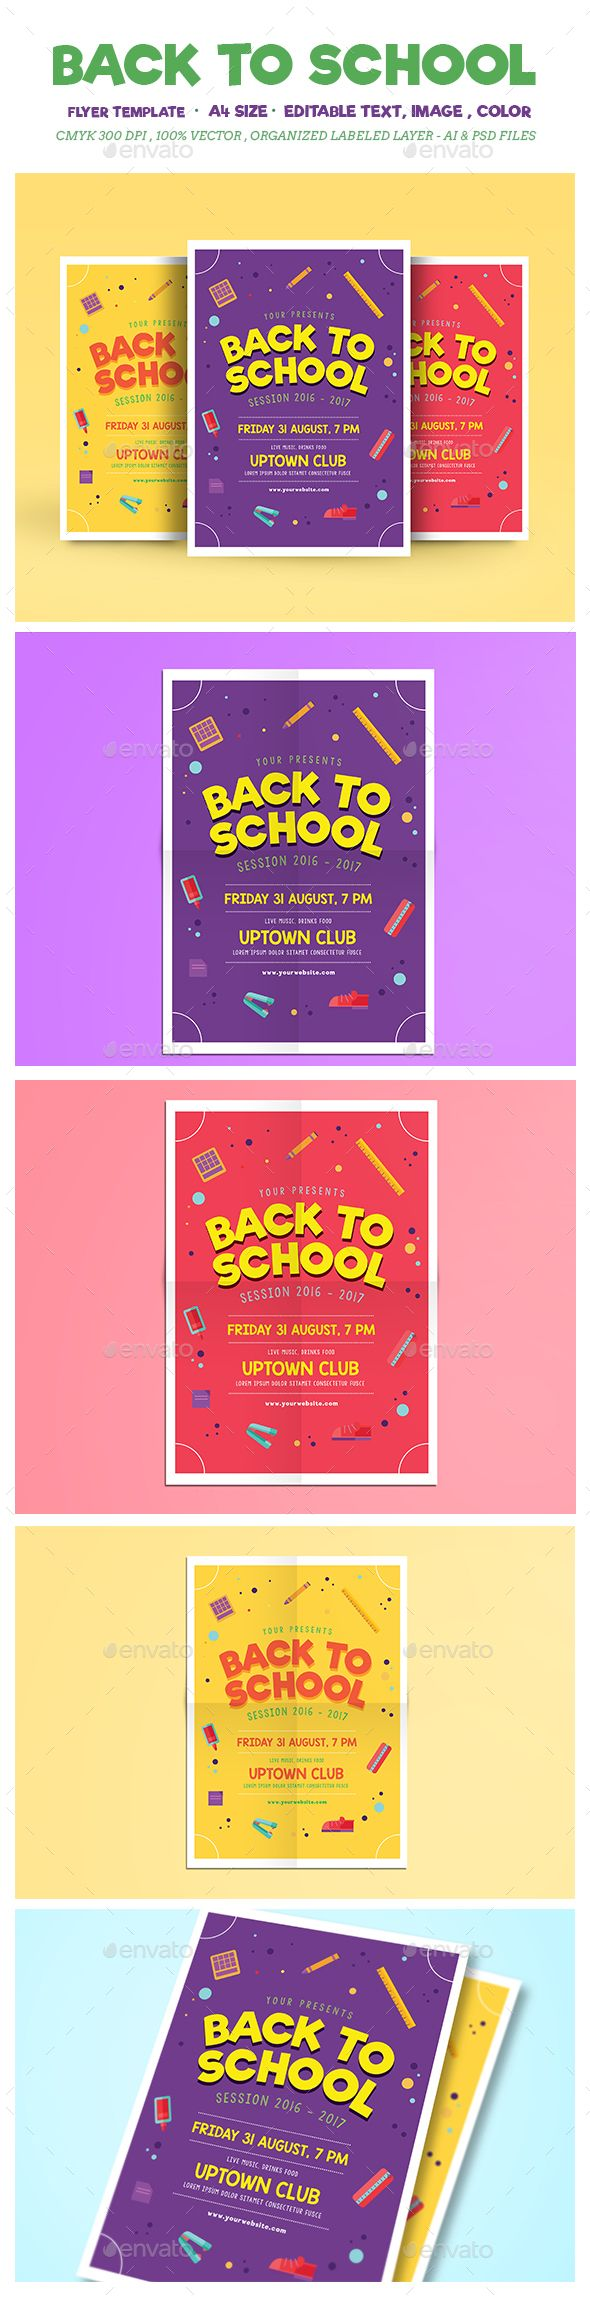 Back to School Flyer Template PSD, AI Illustrator. Download here: https://graphicriver.net/item/back-to-school/17141195?ref=ksioks